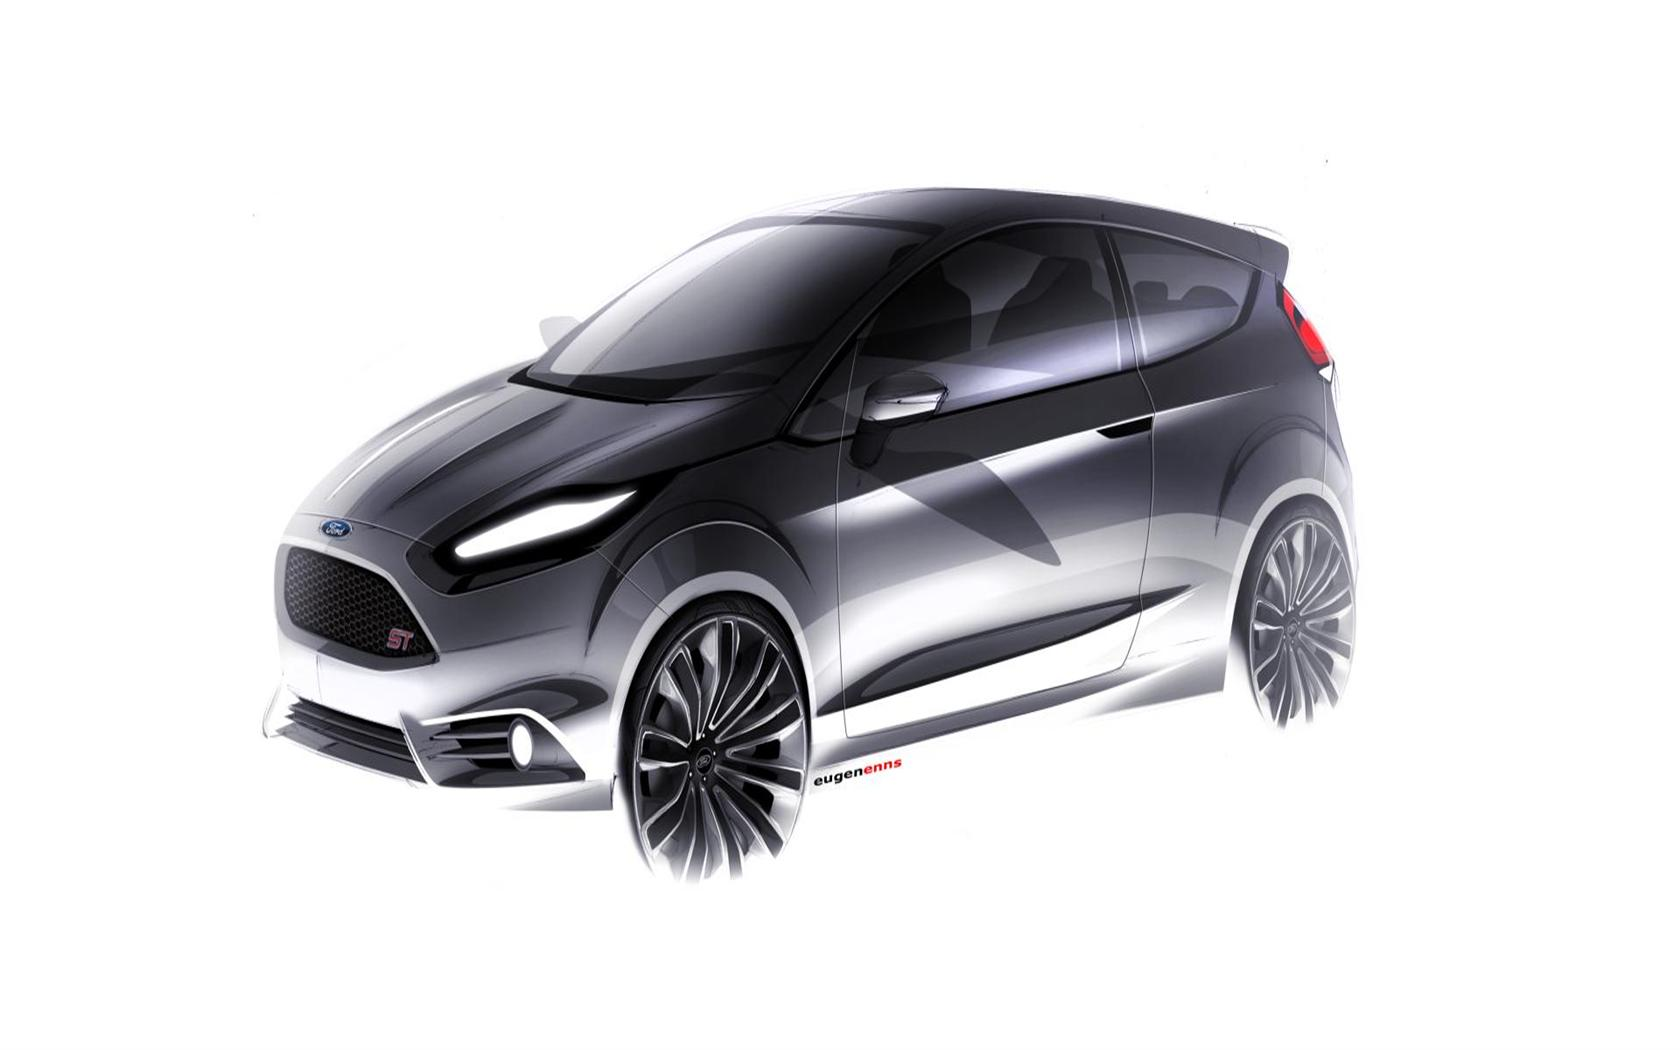 2018 Ford Fiesta ST Concept photo - 3